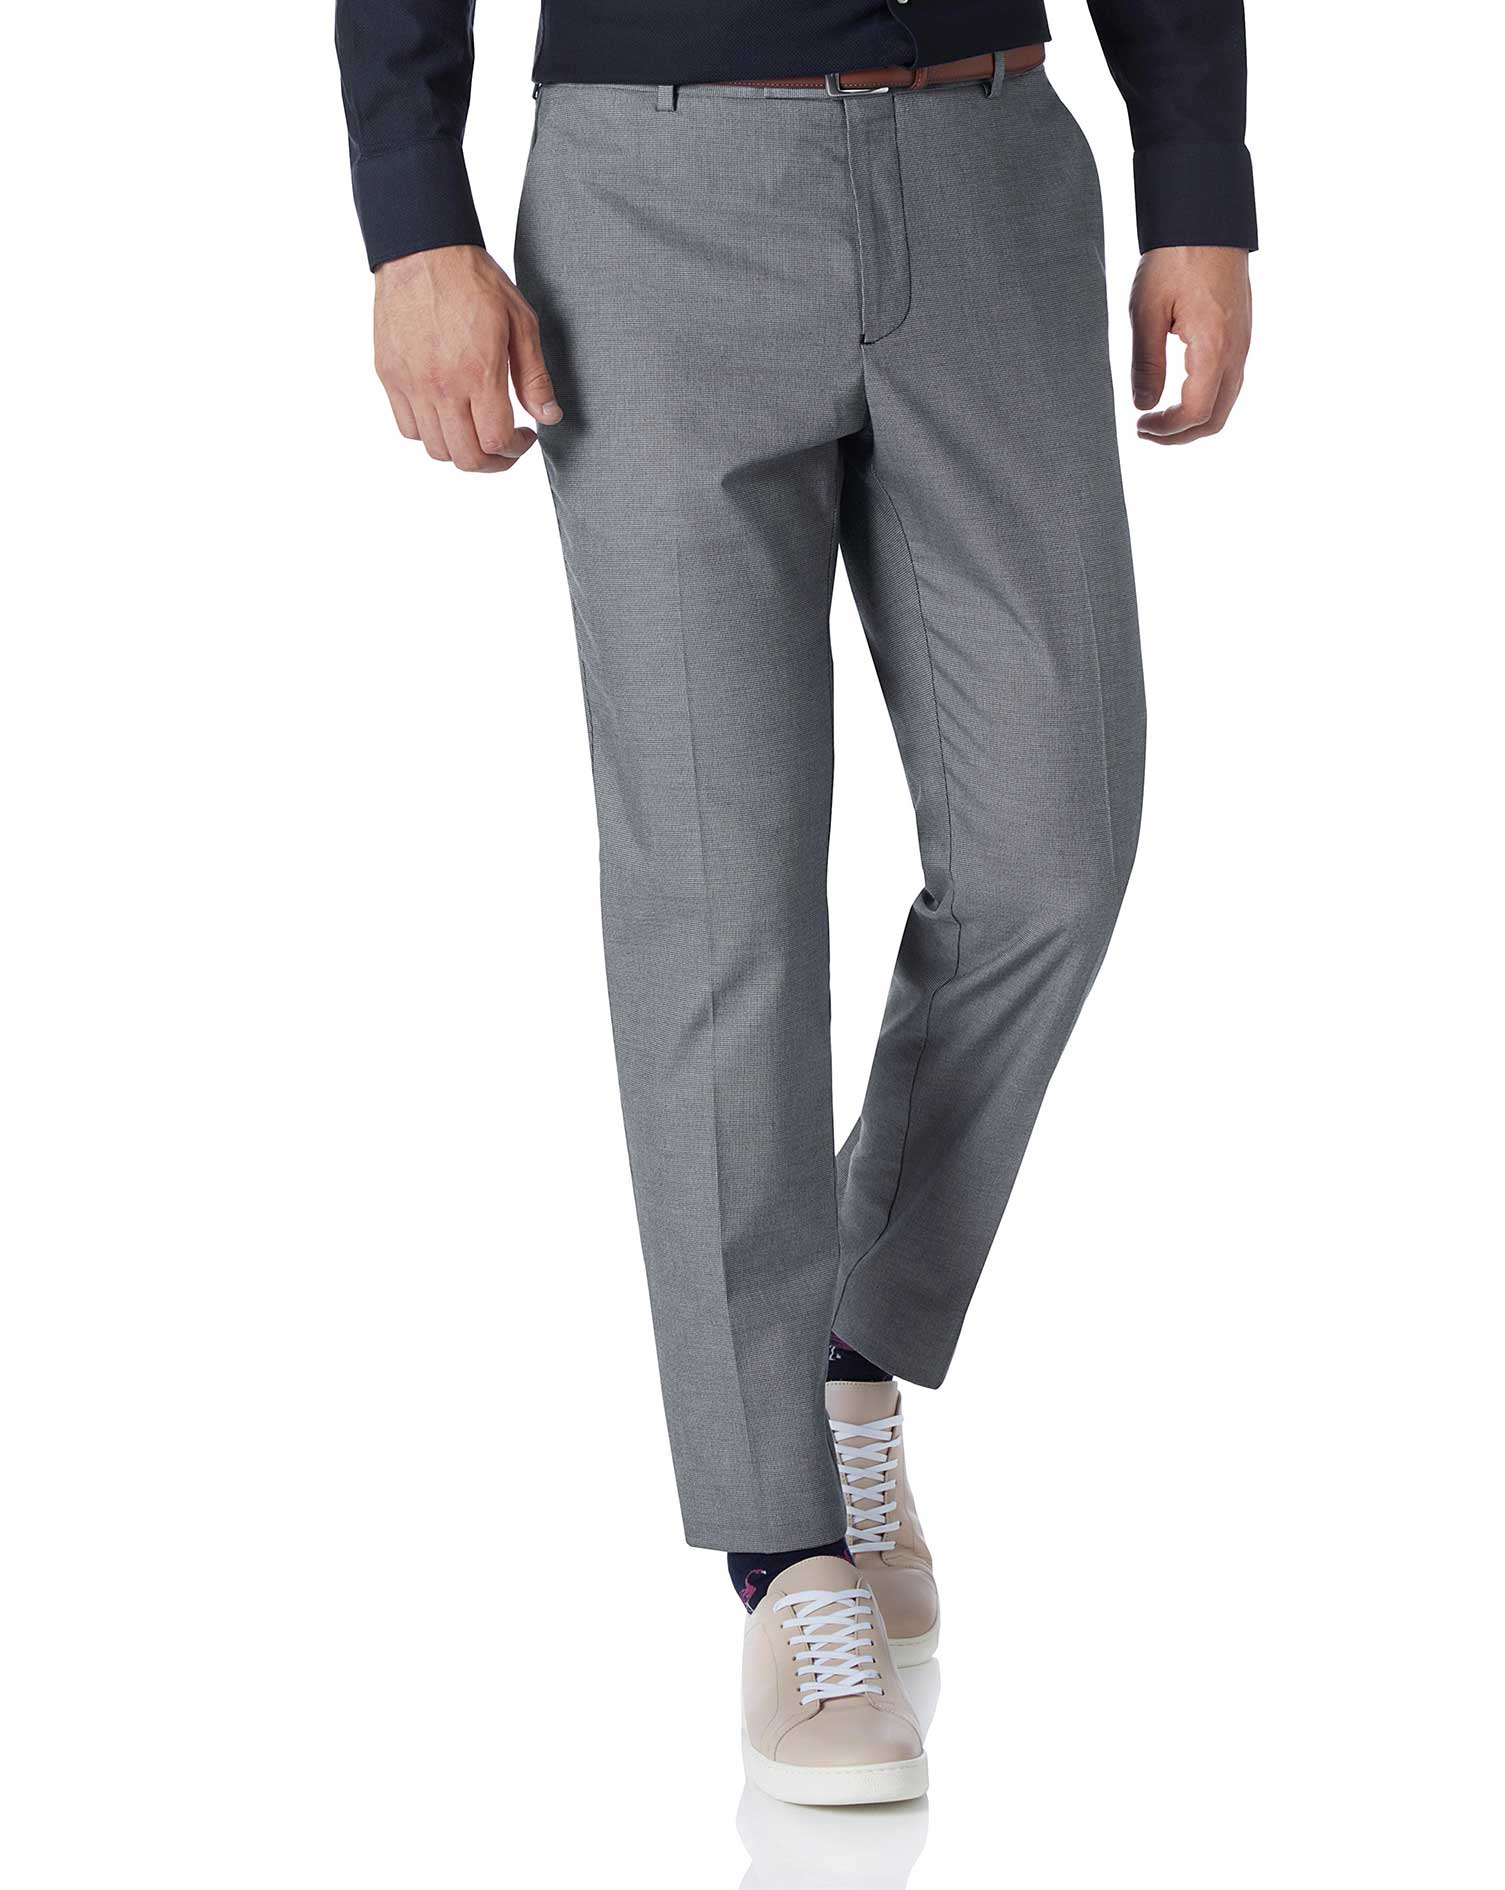 White and Navy Extra Slim Fit Stretch Non-Iron Trousers Size W30 L34 by Charles Tyrwhitt